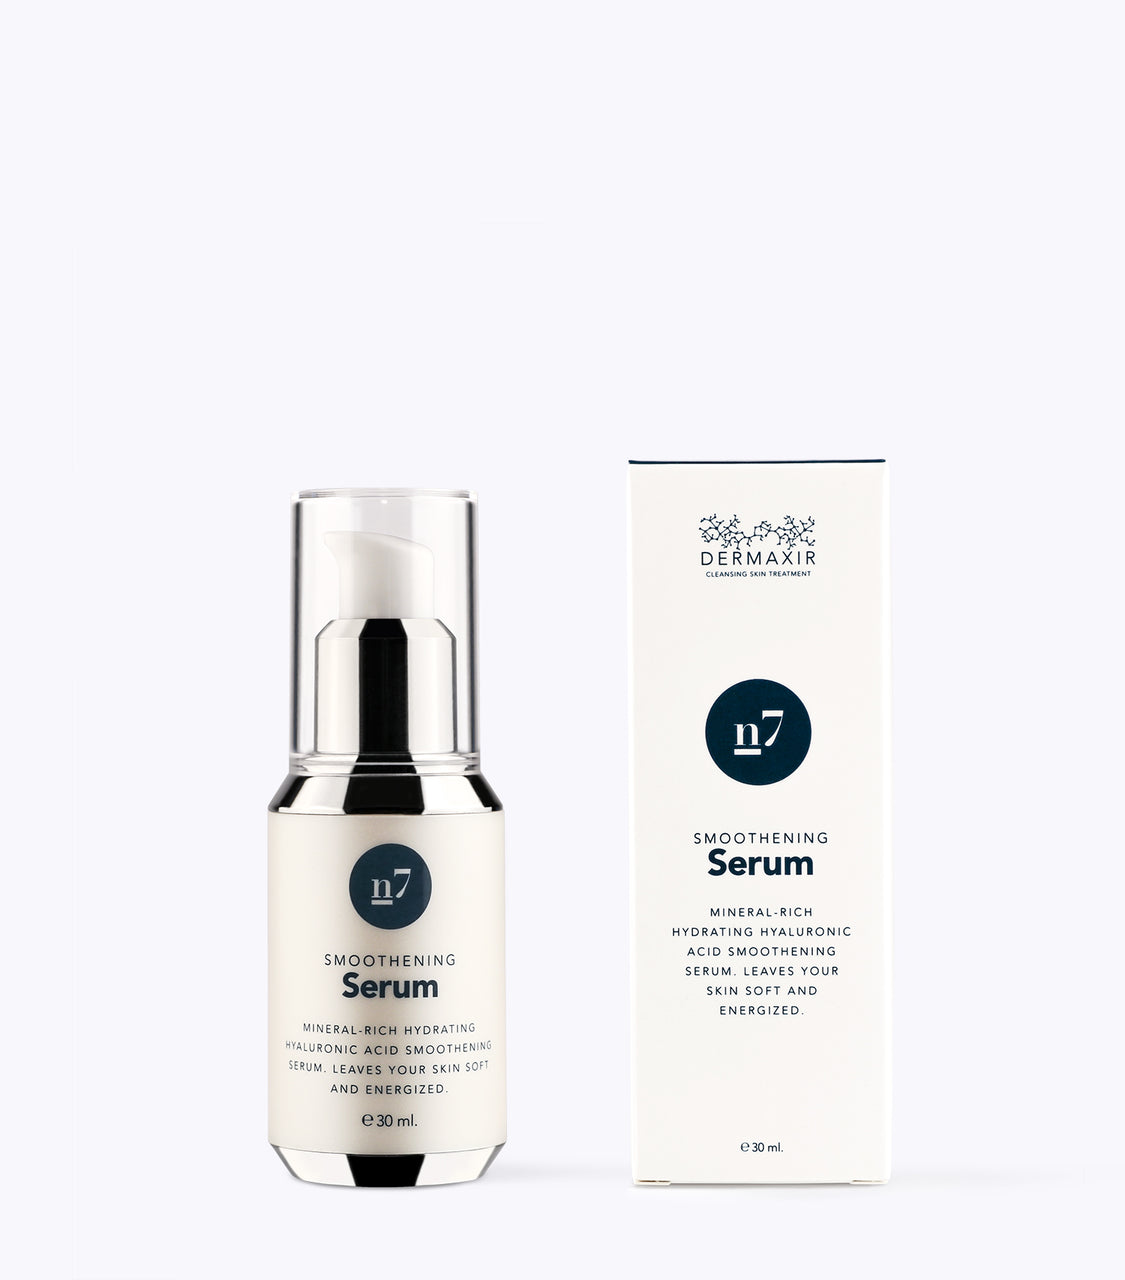 NEW – n7 Smoothening Serum - dermaxir